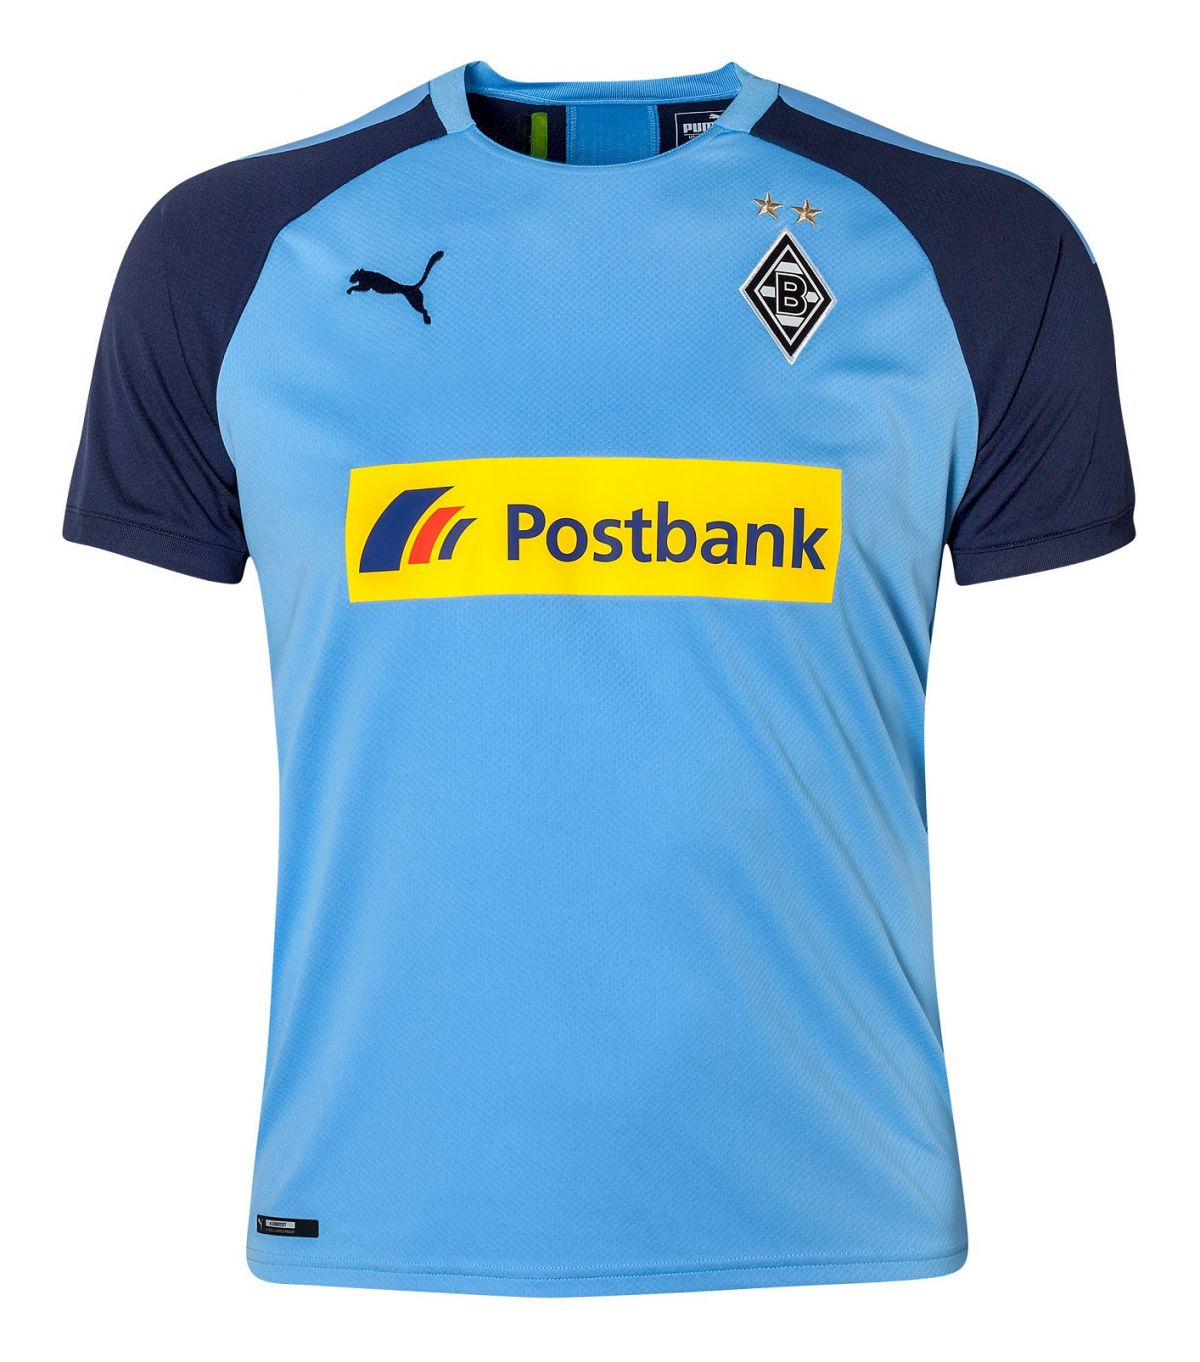 Borussia Monchengladbach 2019 20 Away Kit